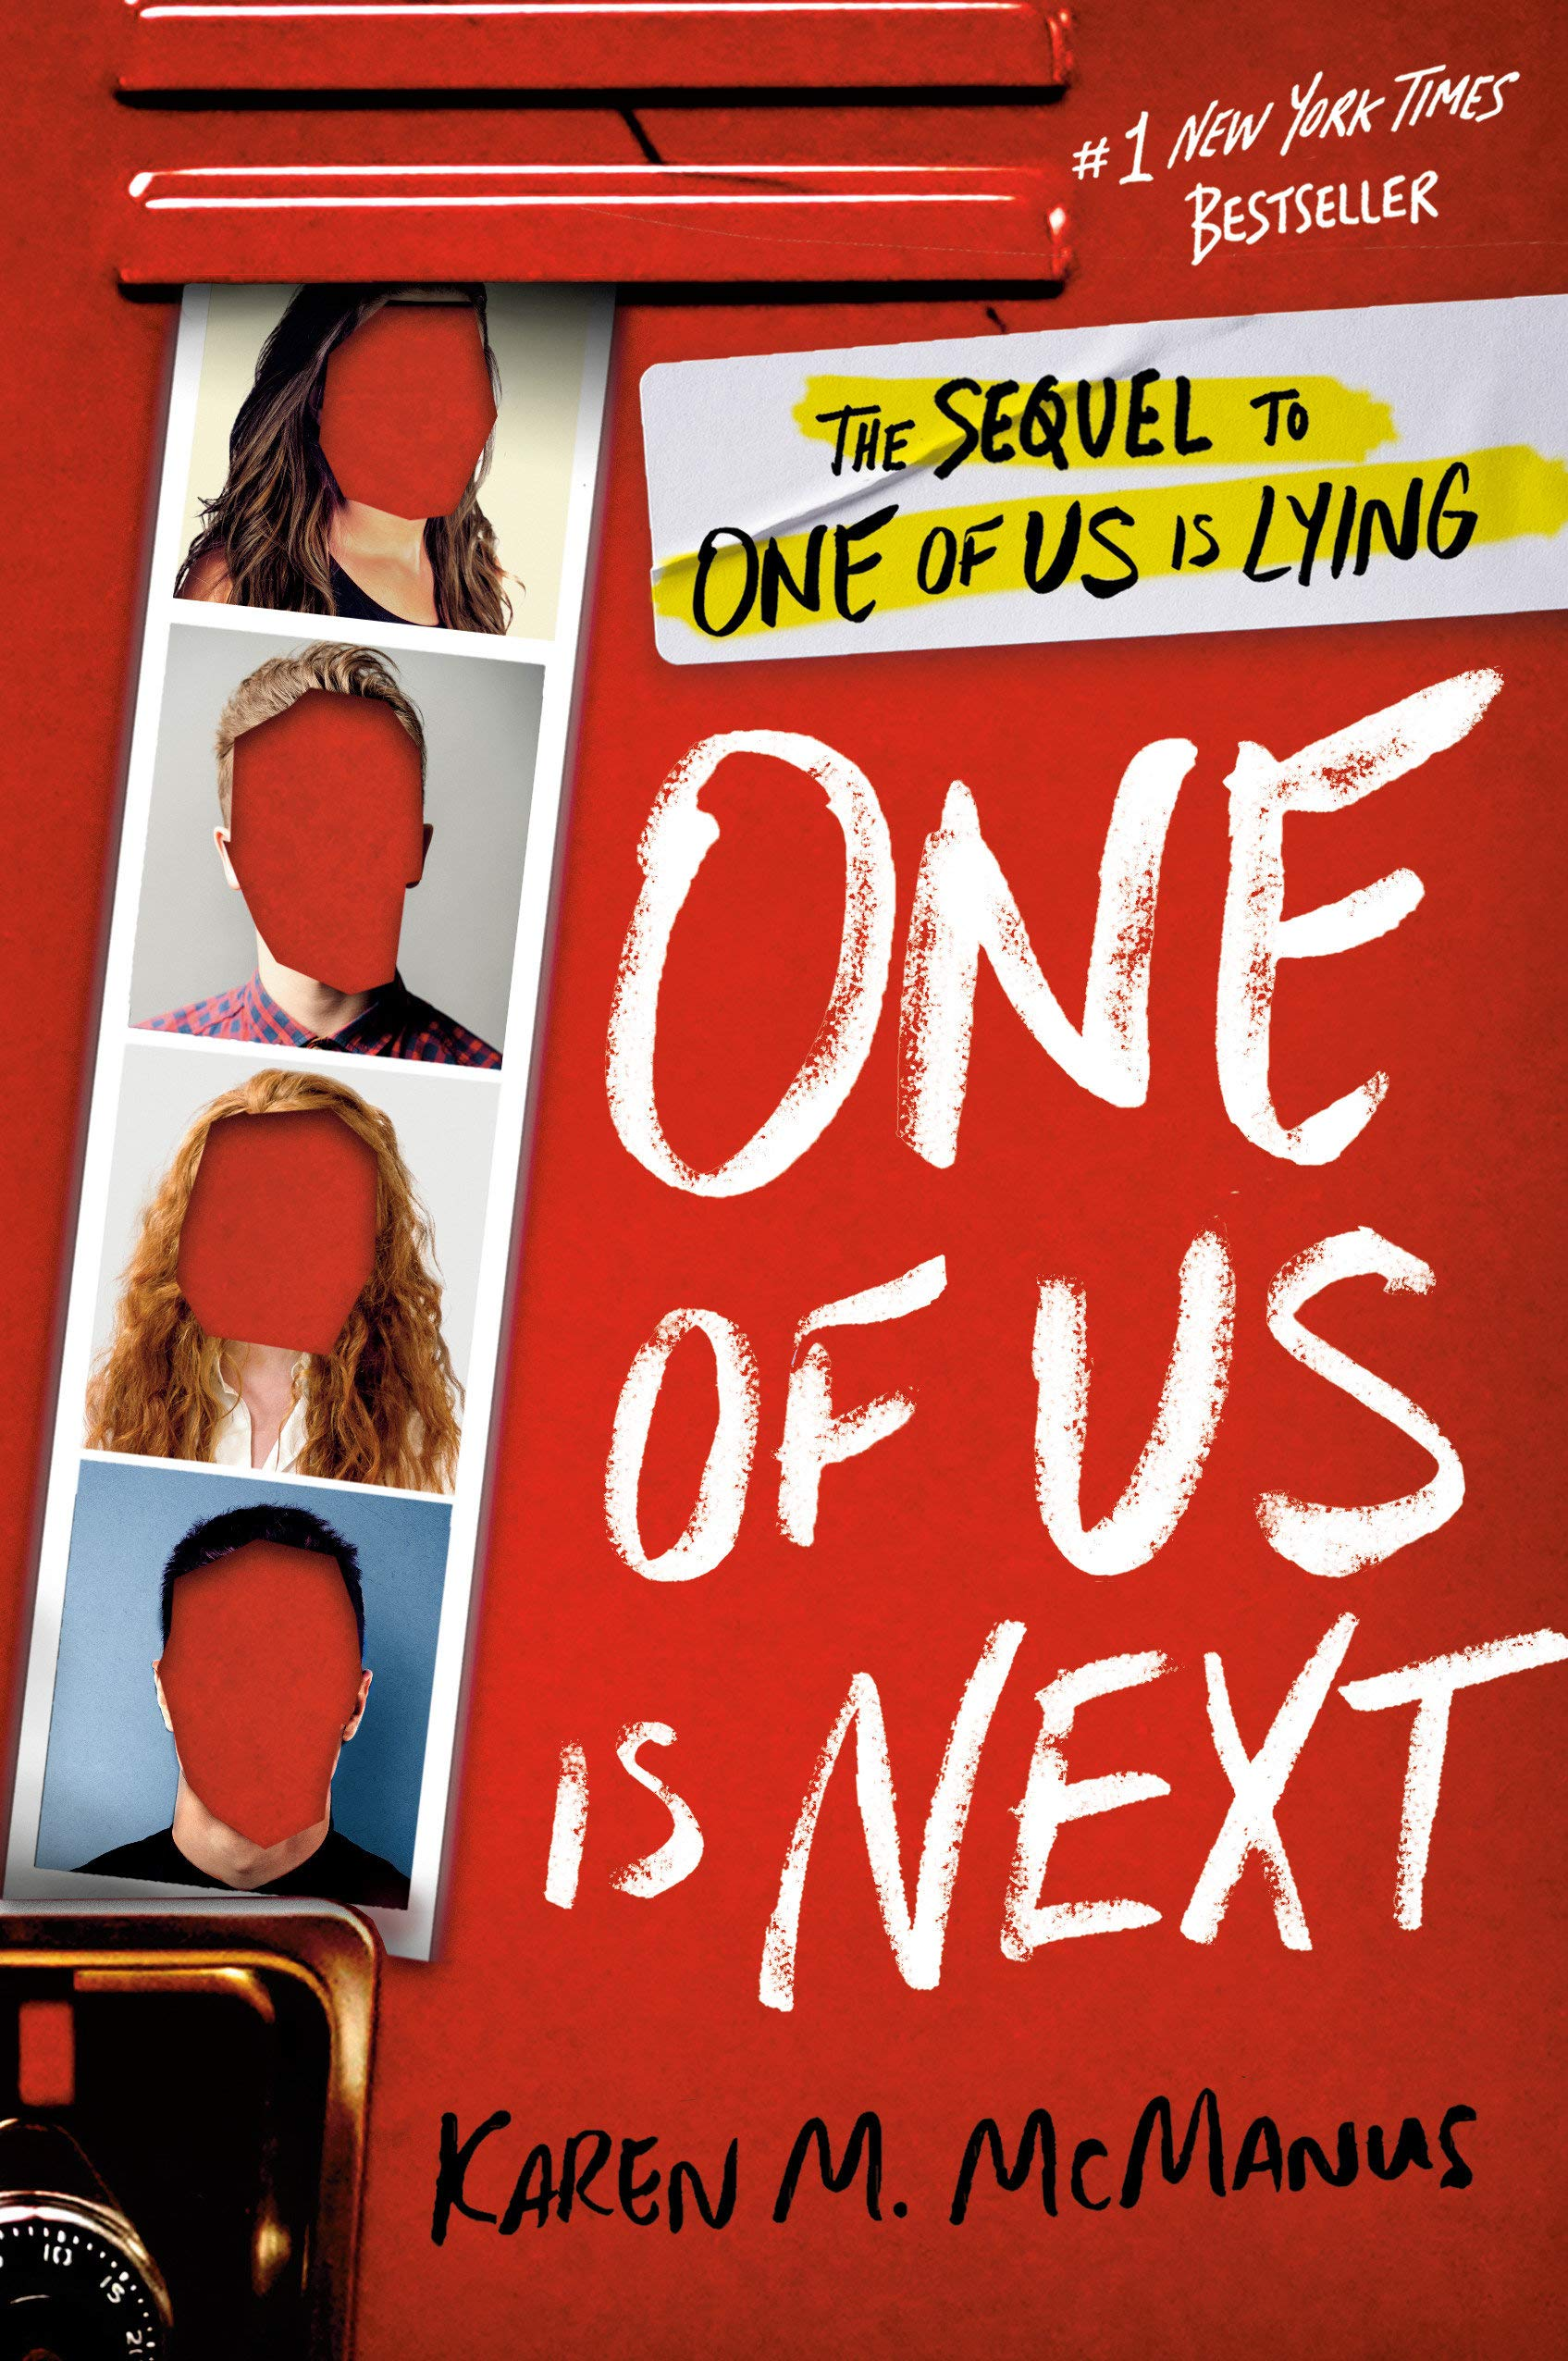 Amazon.com: One of Us Is Next: The Sequel to One of Us Is Lying  (9780525707967): McManus, Karen M.: Books